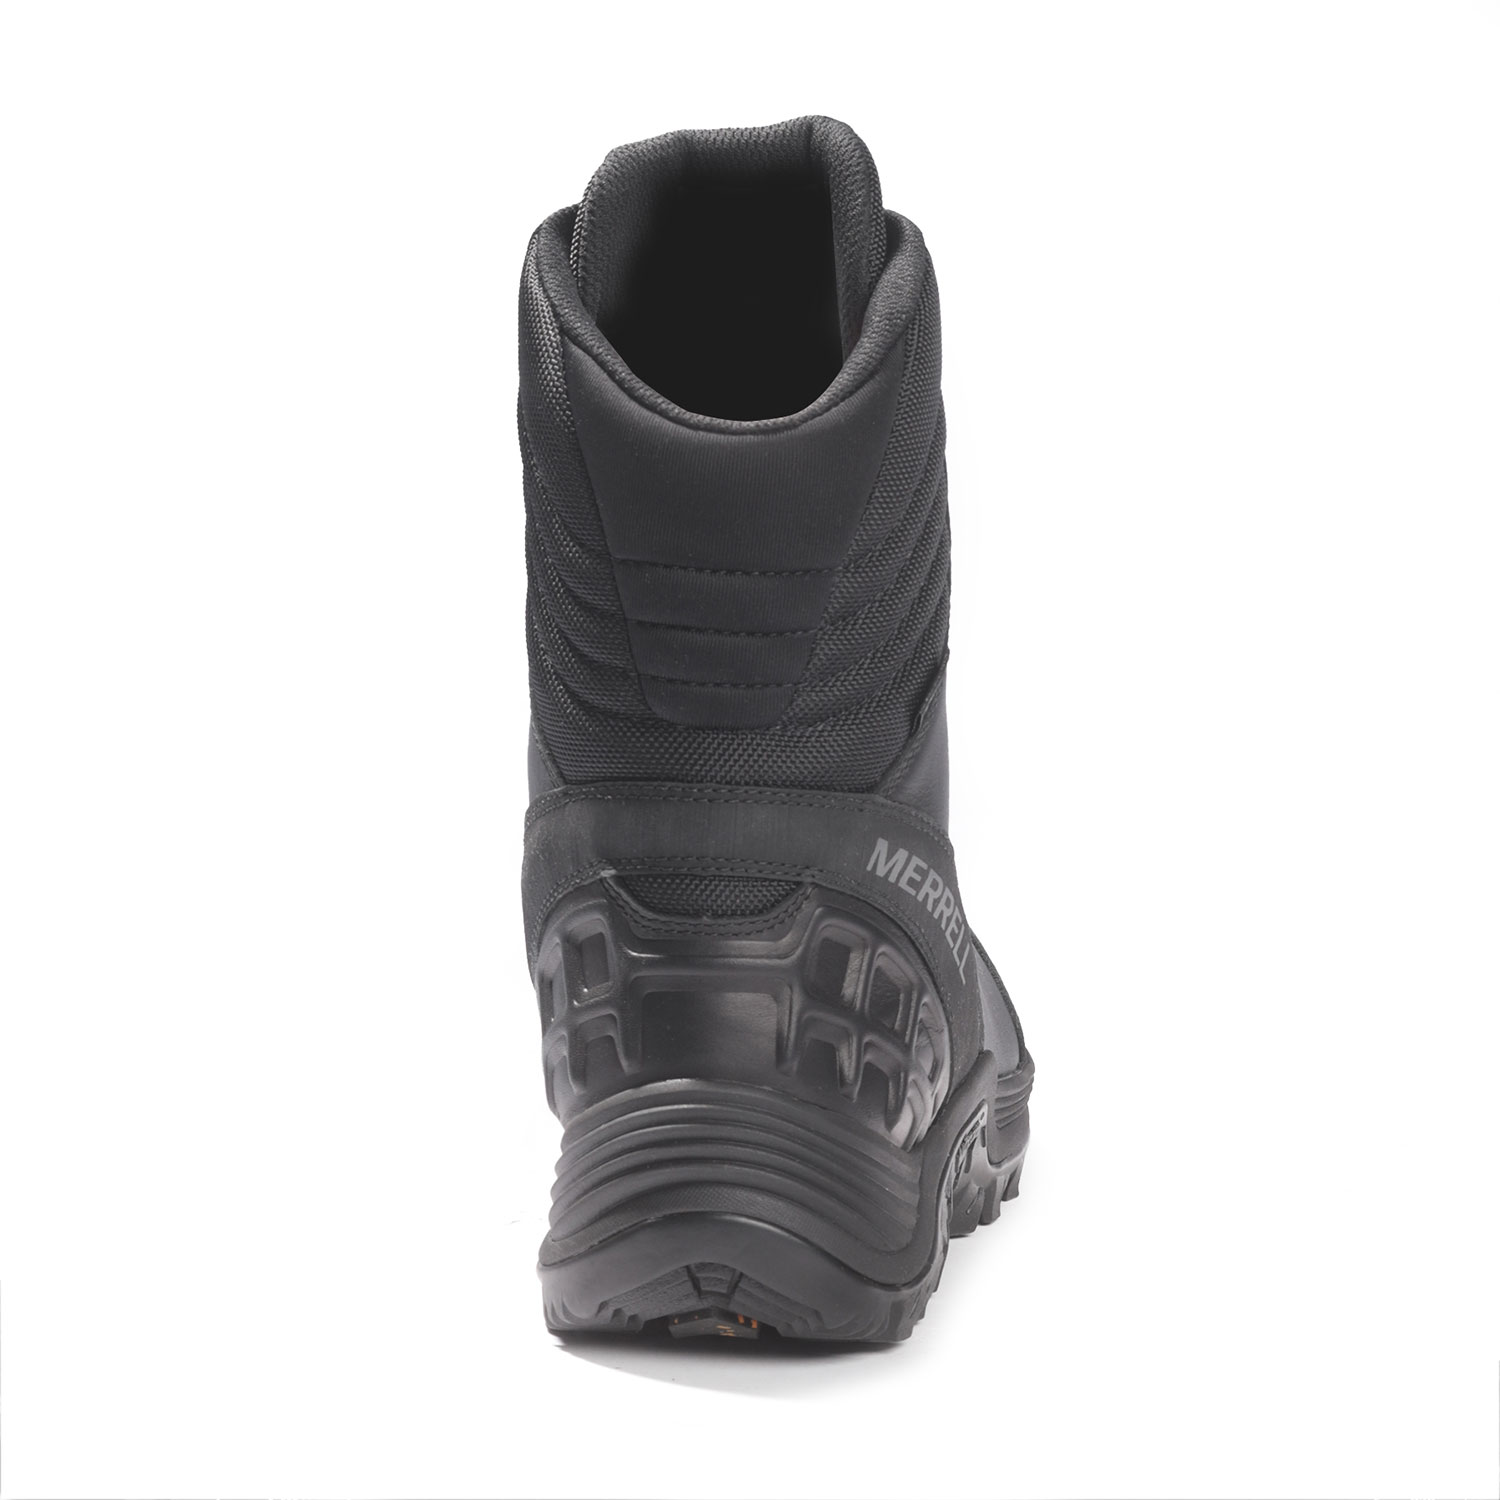 5588f17a487 Merrell Tactical Thermo Rogue Tactical Waterproof Ice+.